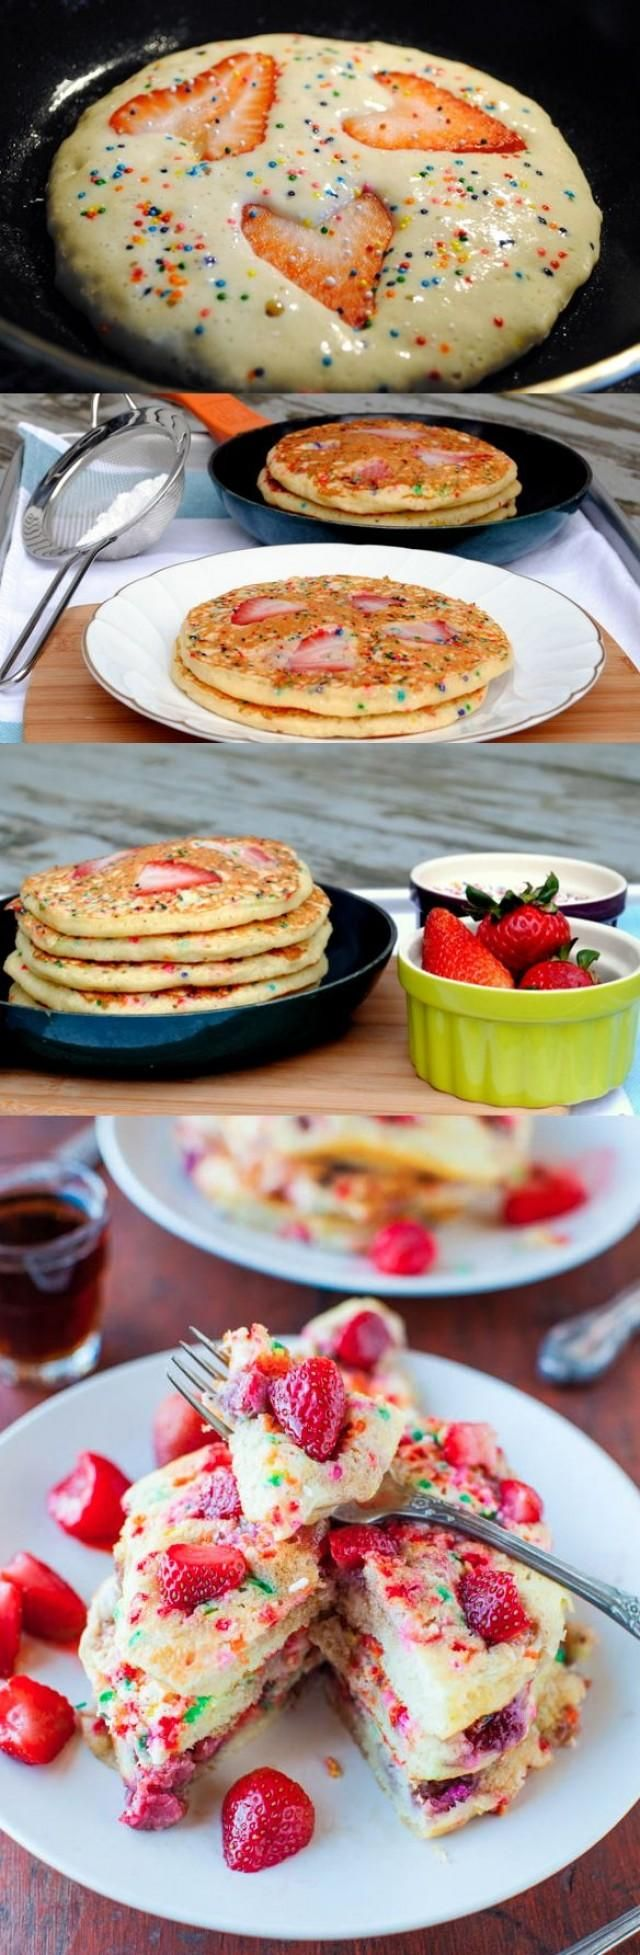 Weddbook is a content discovery engine mostly specialized on wedding concept. You can collect images, videos or articles you discovered  organize them, add your own ideas to your collections and share with other people - Make these for Breakfast: Strawberry Funfetti Pancakes! Perfect for birthday mornings!